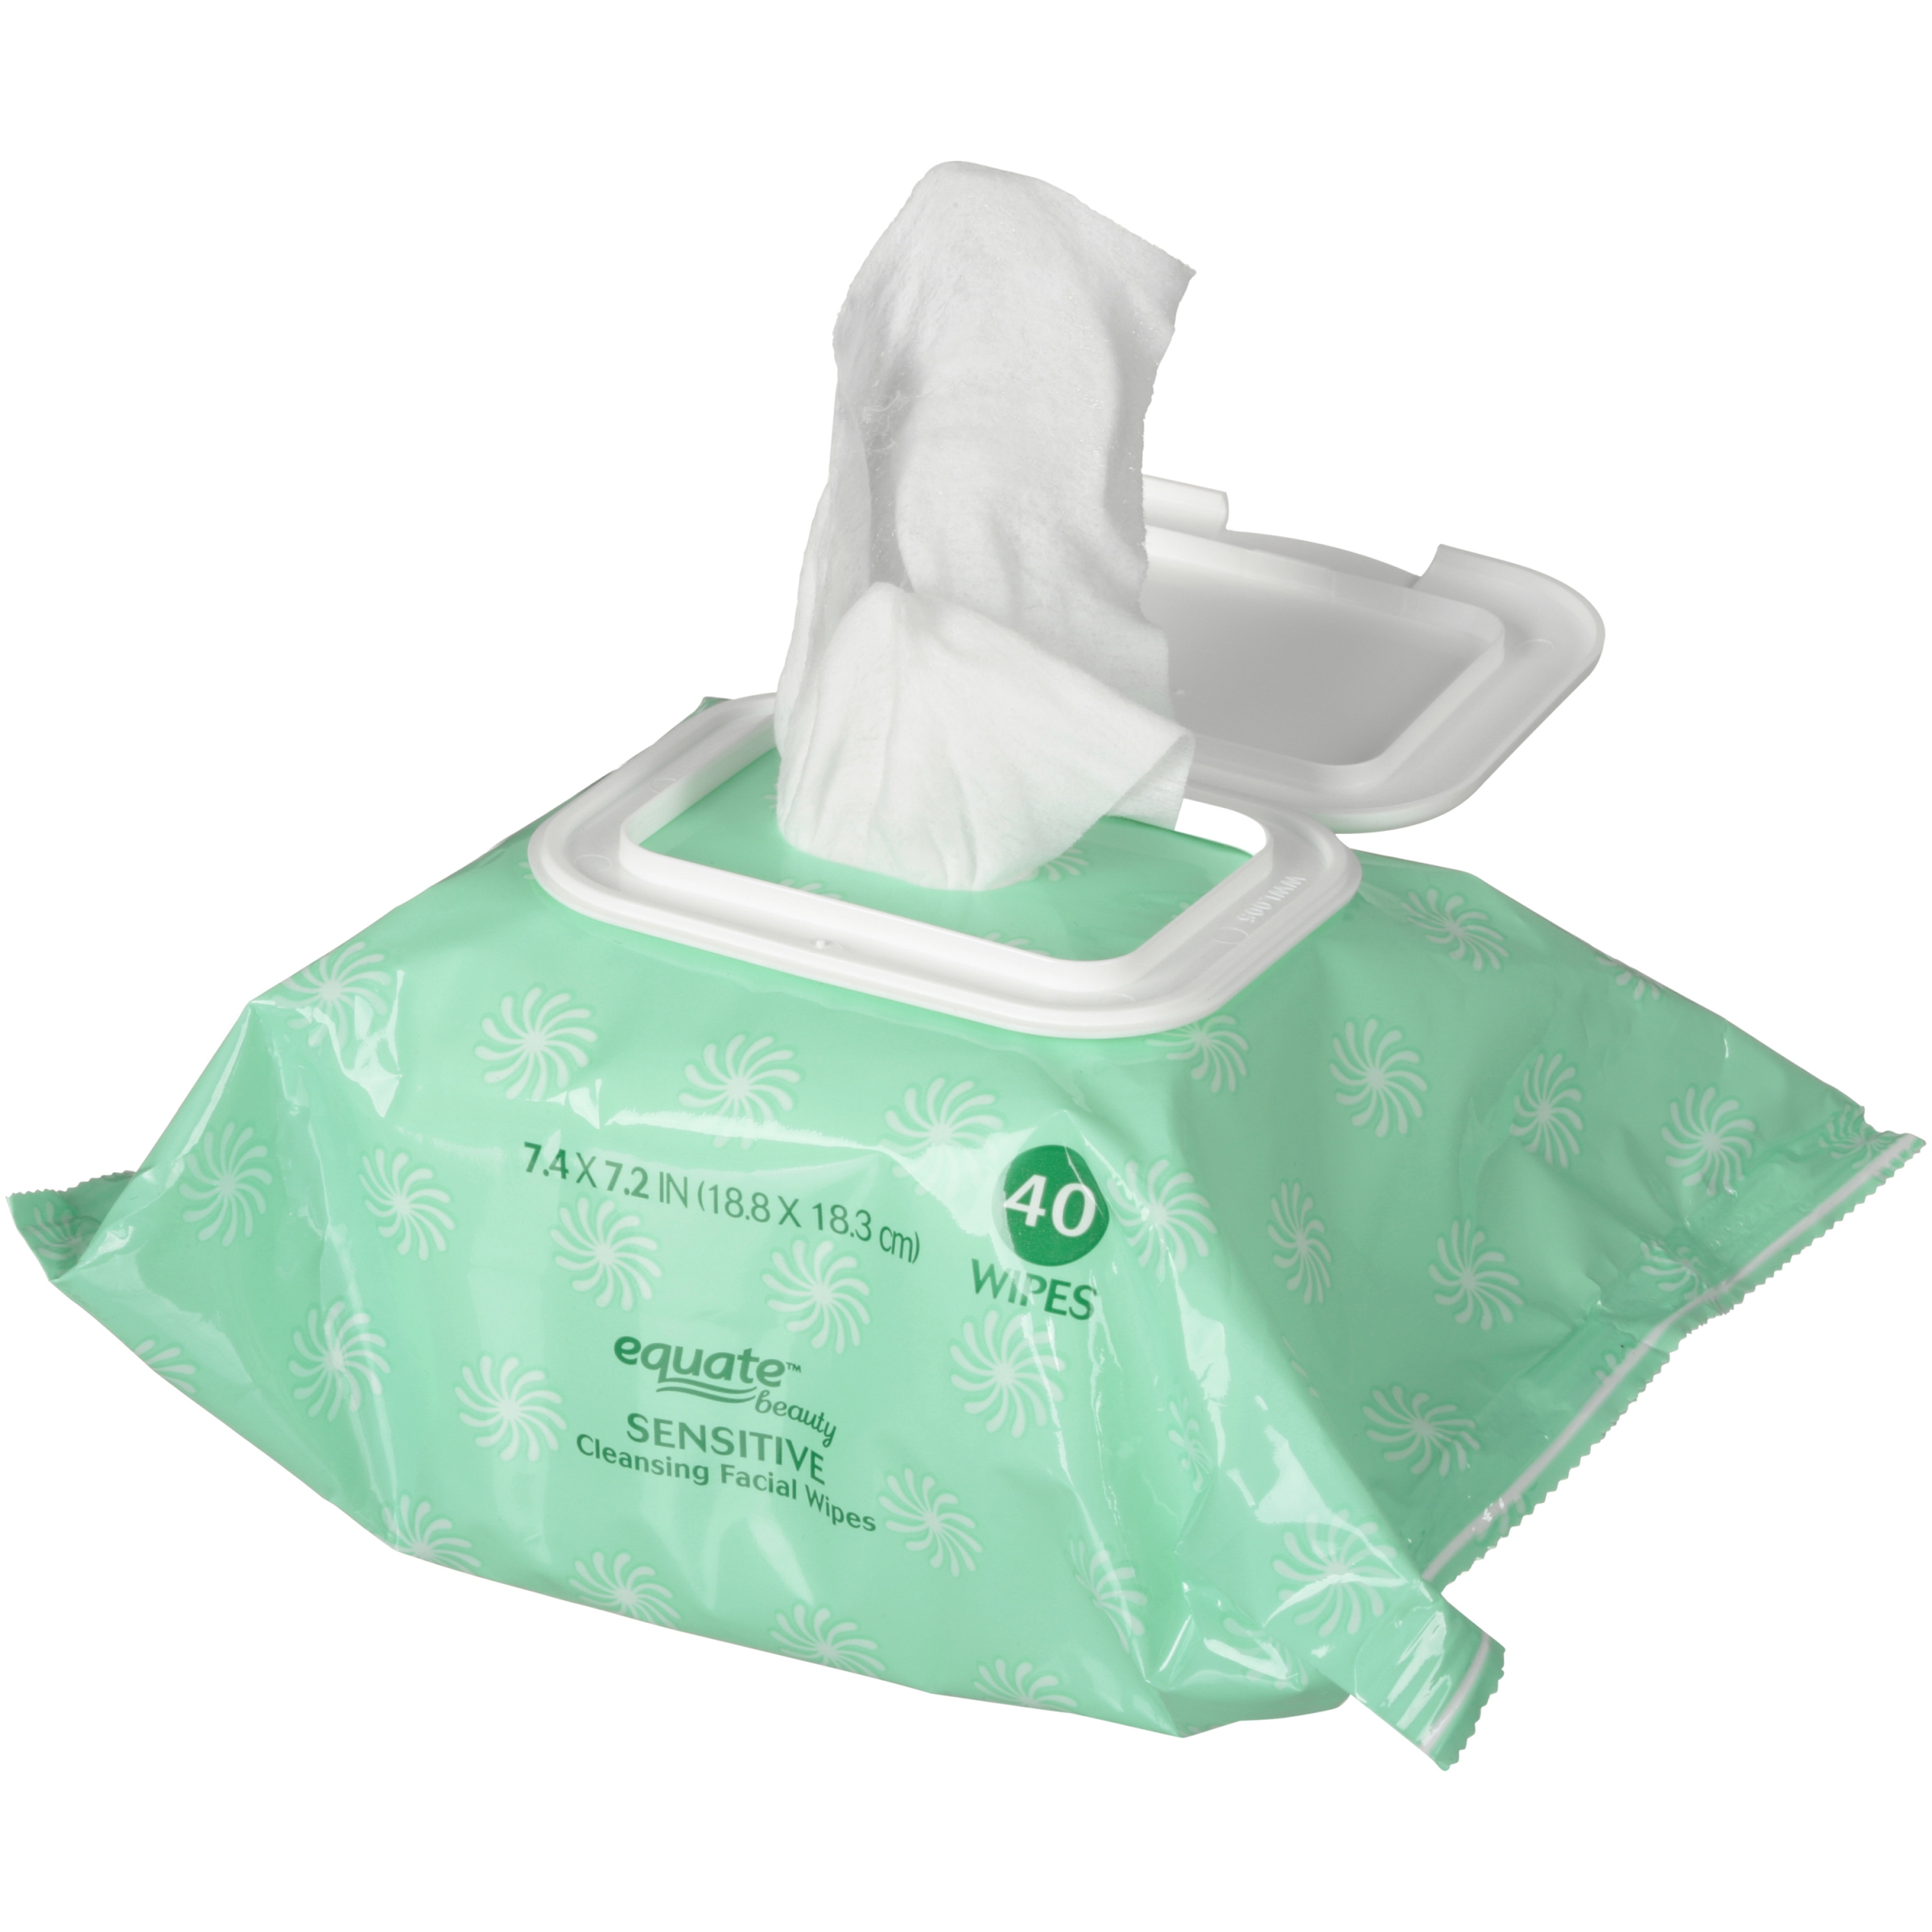 Equate Beauty Sensitive Cleansing Facial Wipes, 40 Ct